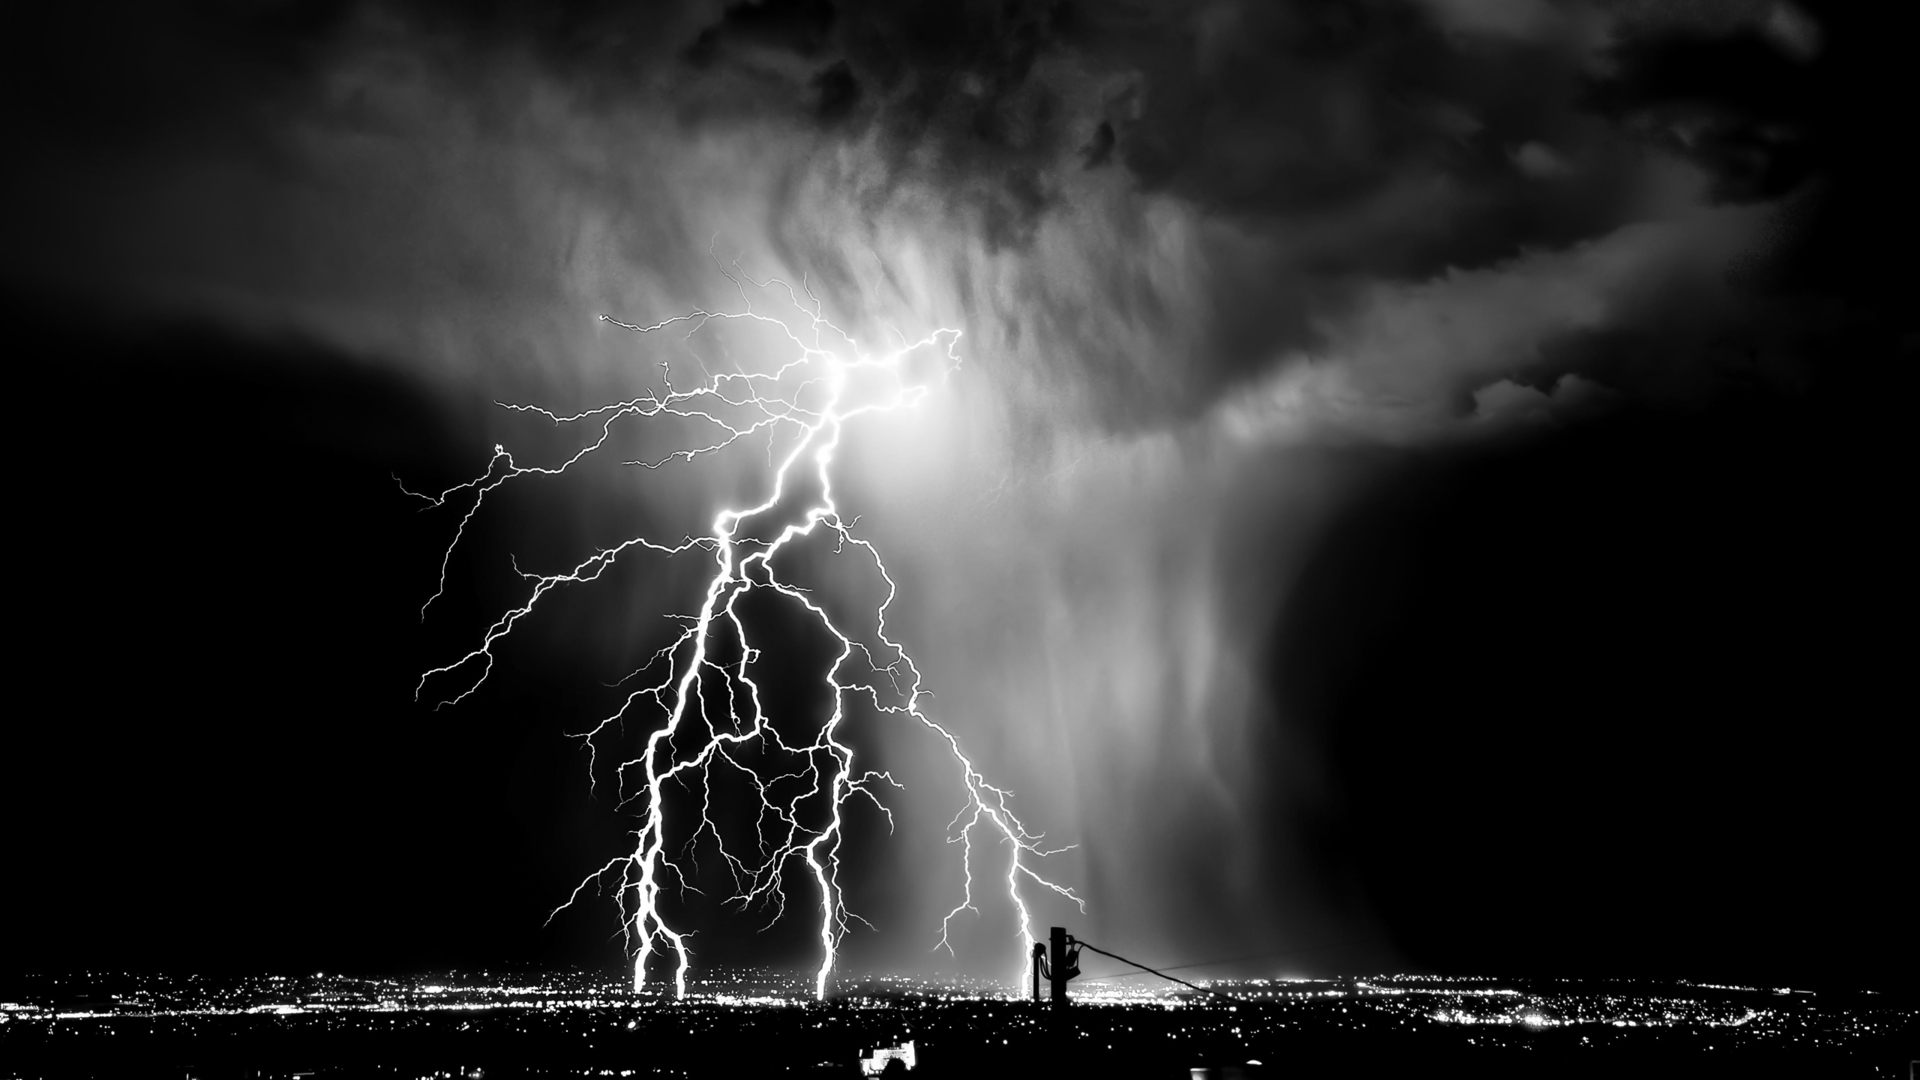 Lightning Black And White wallpaper   889318 1920x1080